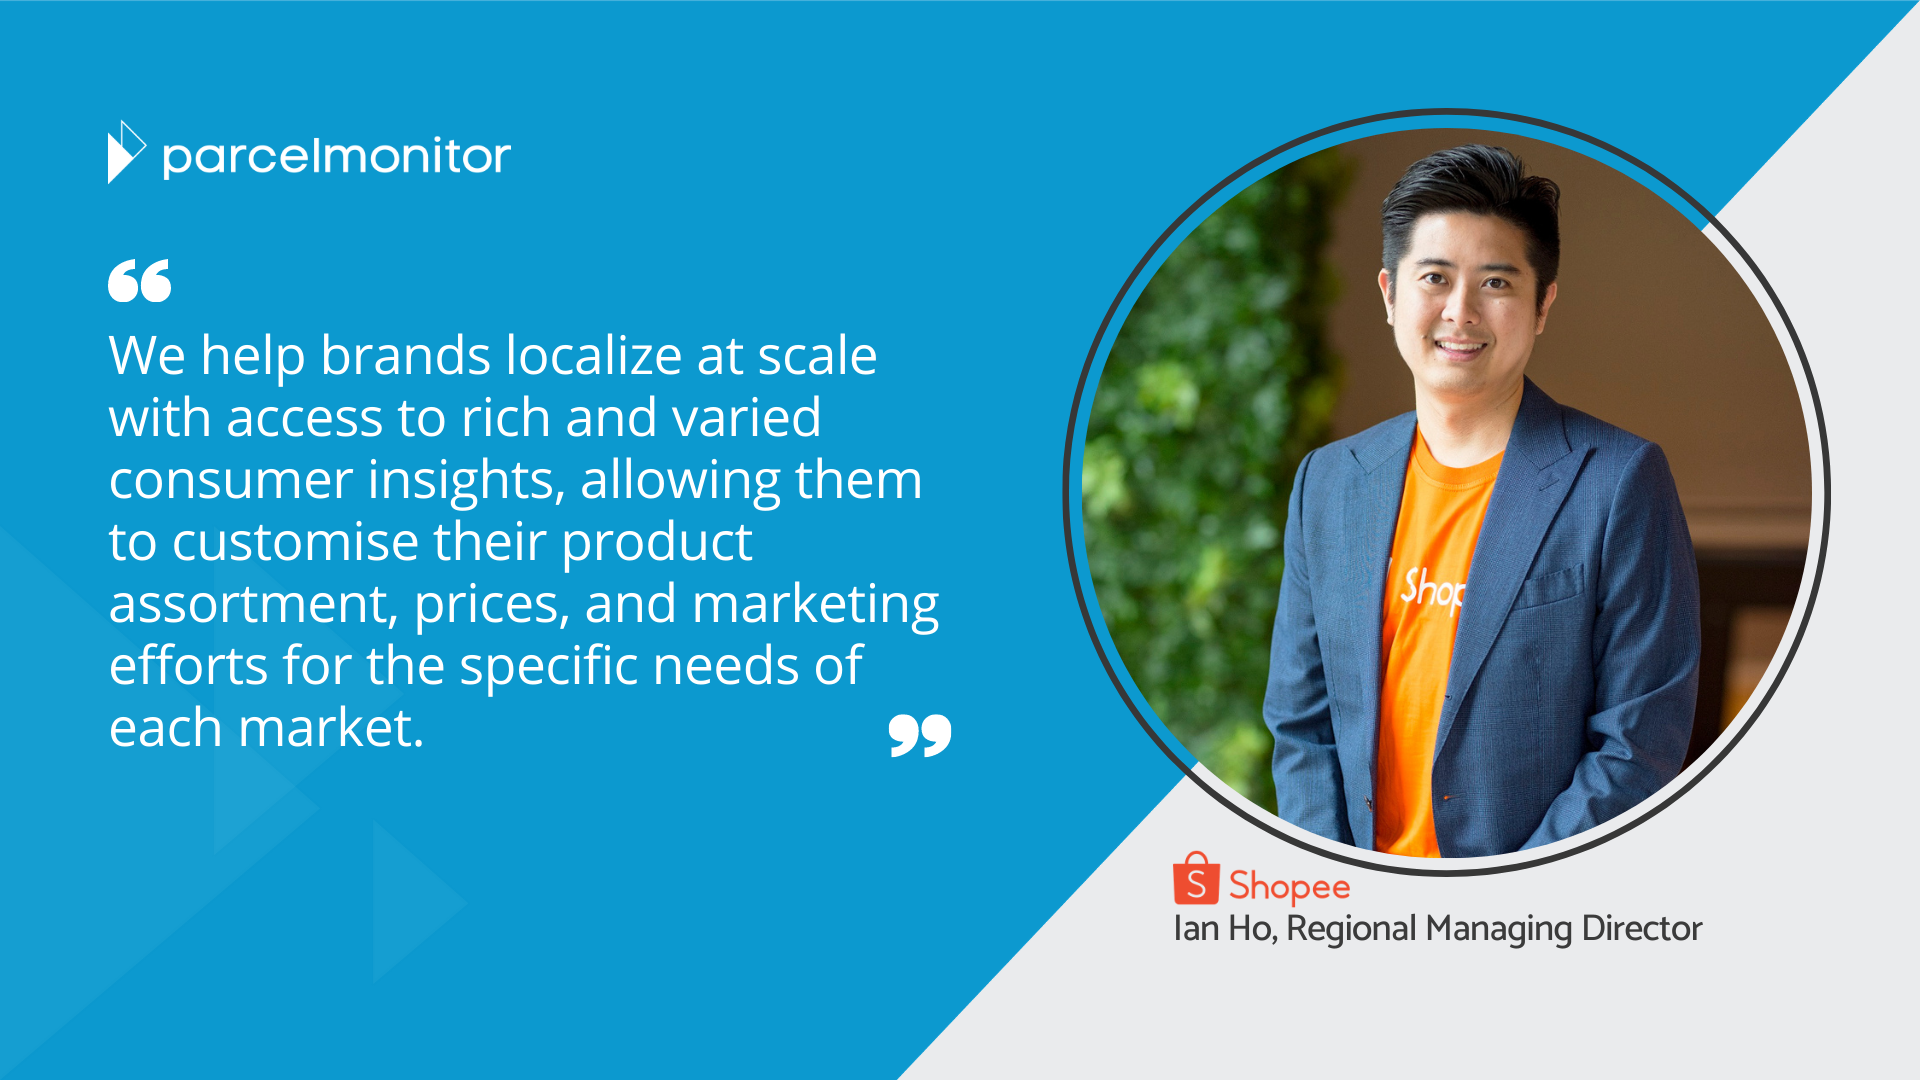 Shopee Interview - Social media quote